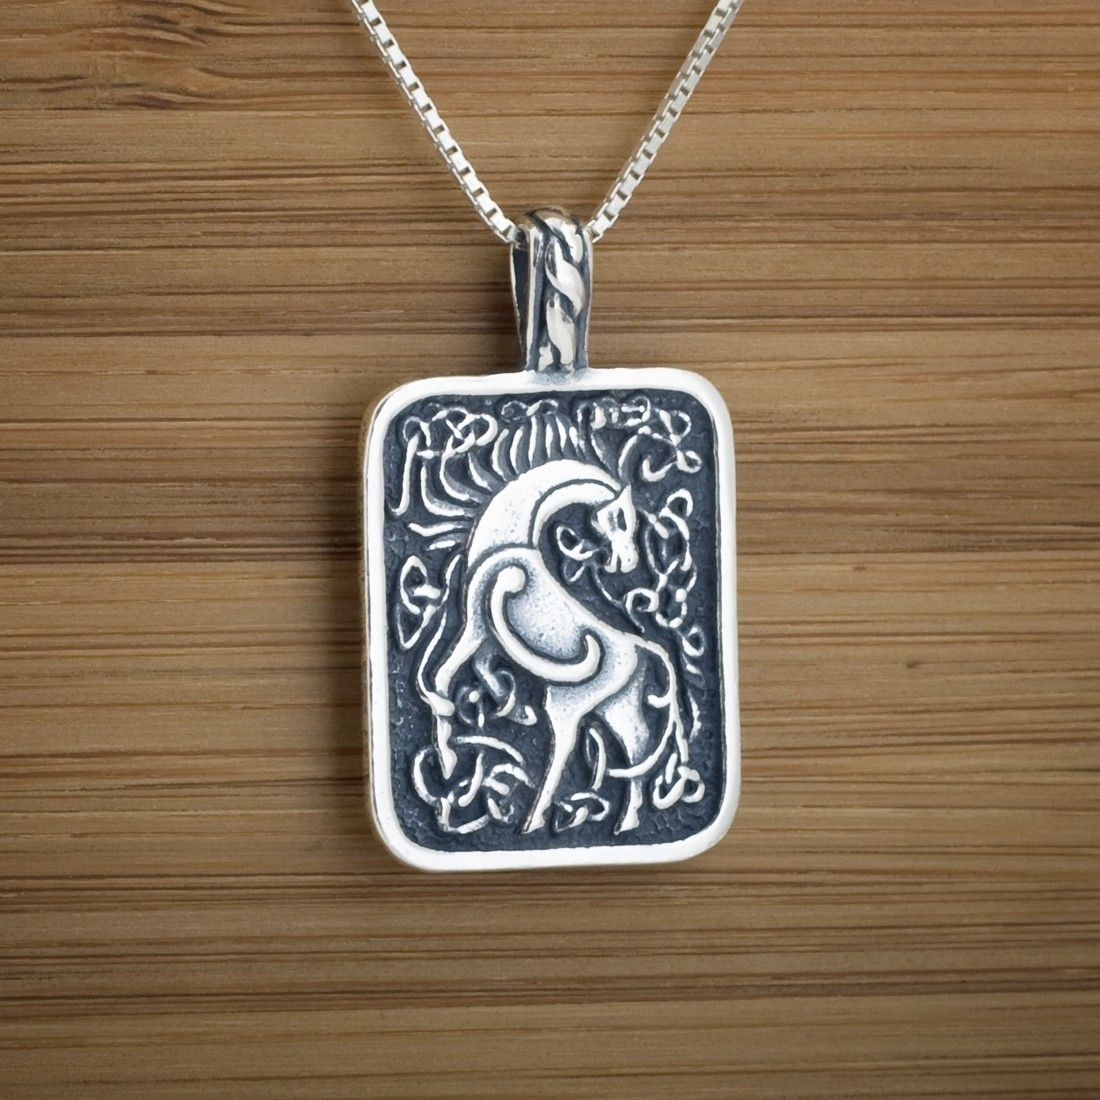 Celtic horse pendant sterling silver via etsy equine jewelry this sterling silver horse pendant is fantastically detailed with the stylized horse of the goddess epona at the center of the pendant aloadofball Gallery